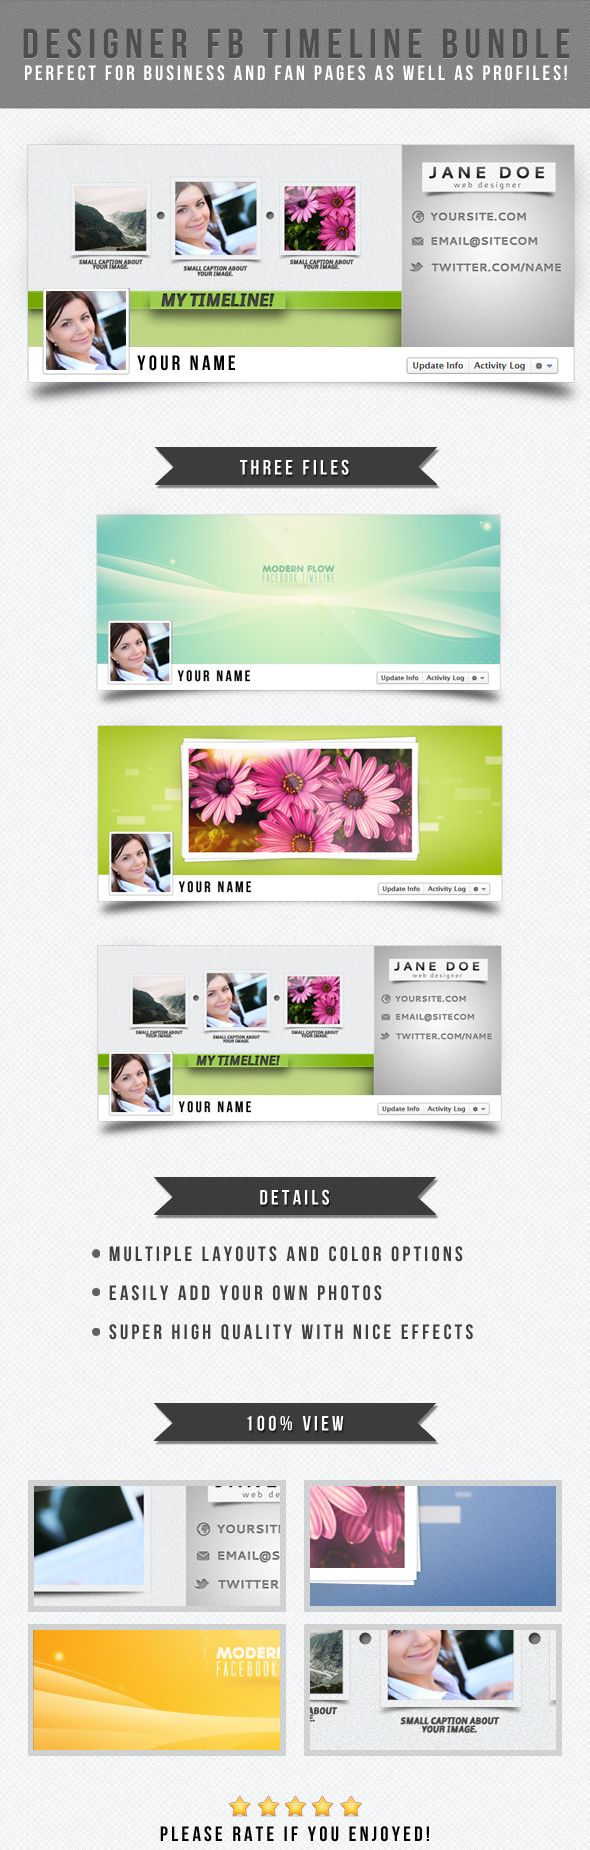 Facebook cover photo collage template 2016 is perfect for photo facebook cover photo collage template 2016 is perfect for photo collaging purpose it is available for free to download and comes with 2 layered p flashek Choice Image